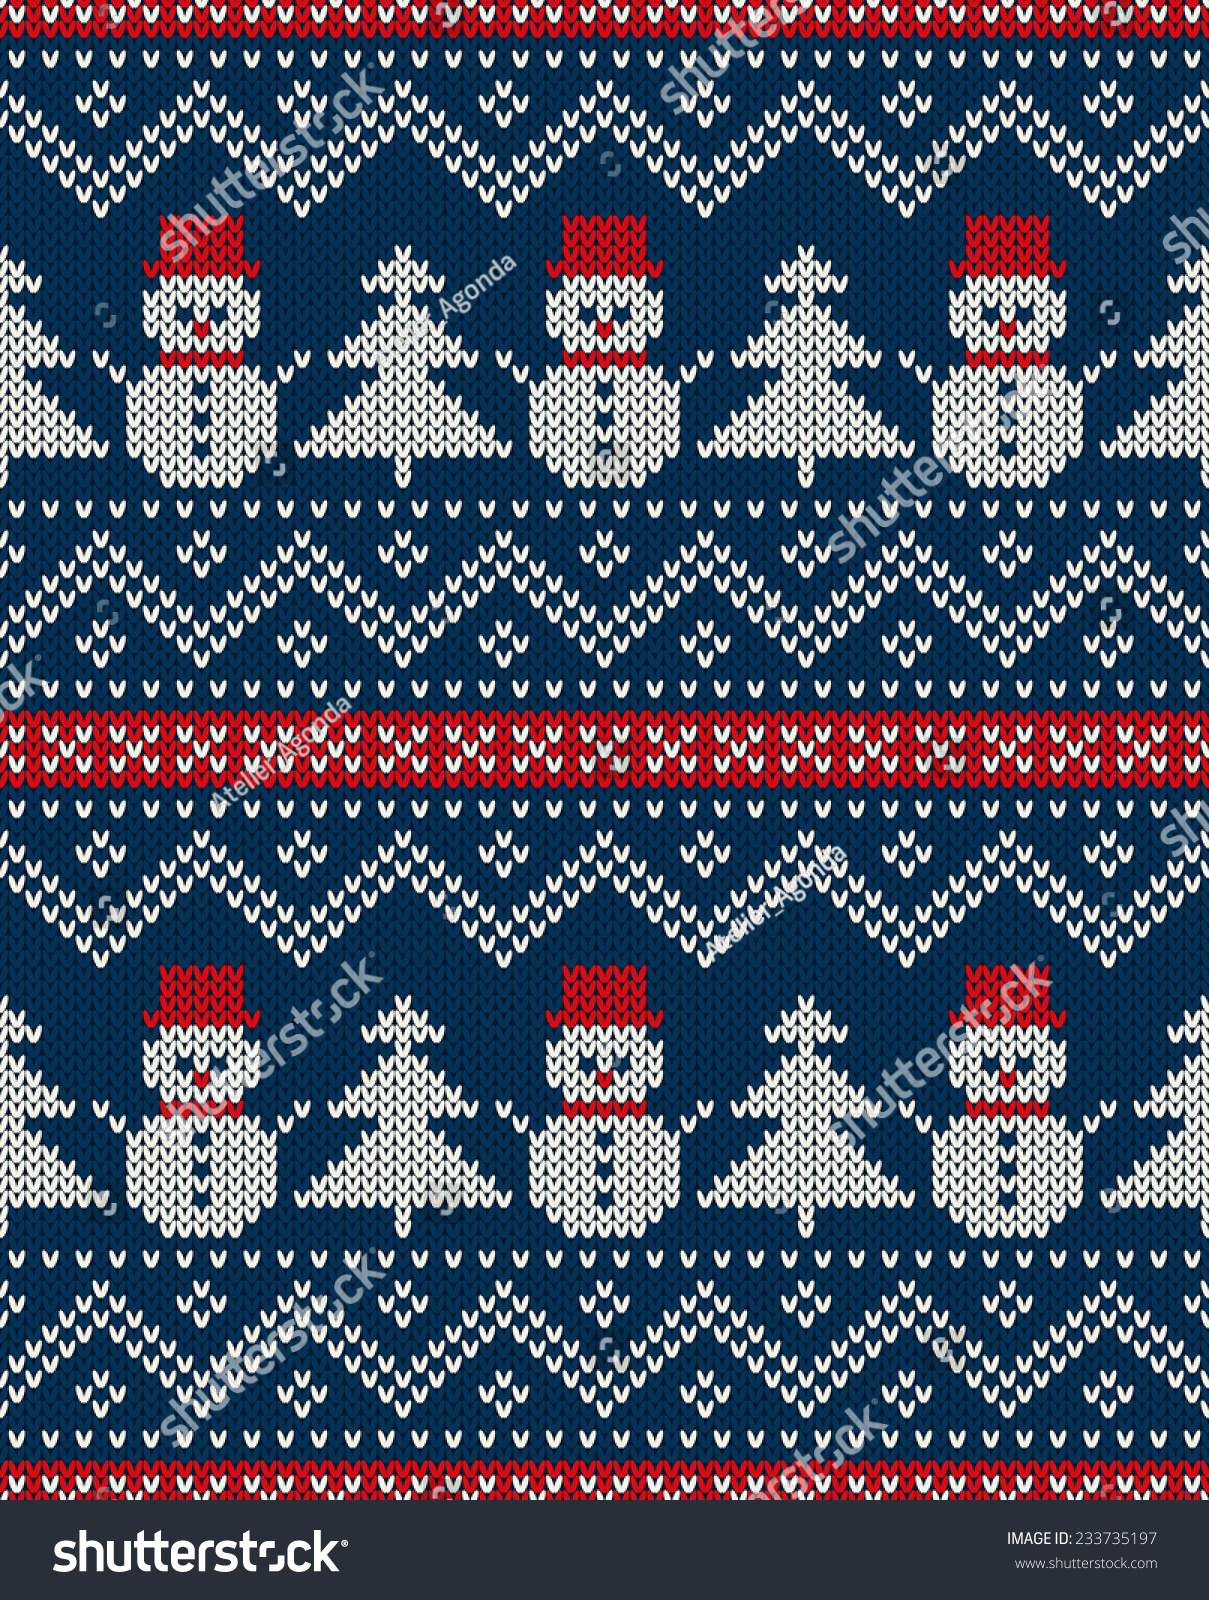 7e447b723149 Winter Holiday Seamless Knitted Pattern Snowman Stock Vector ...